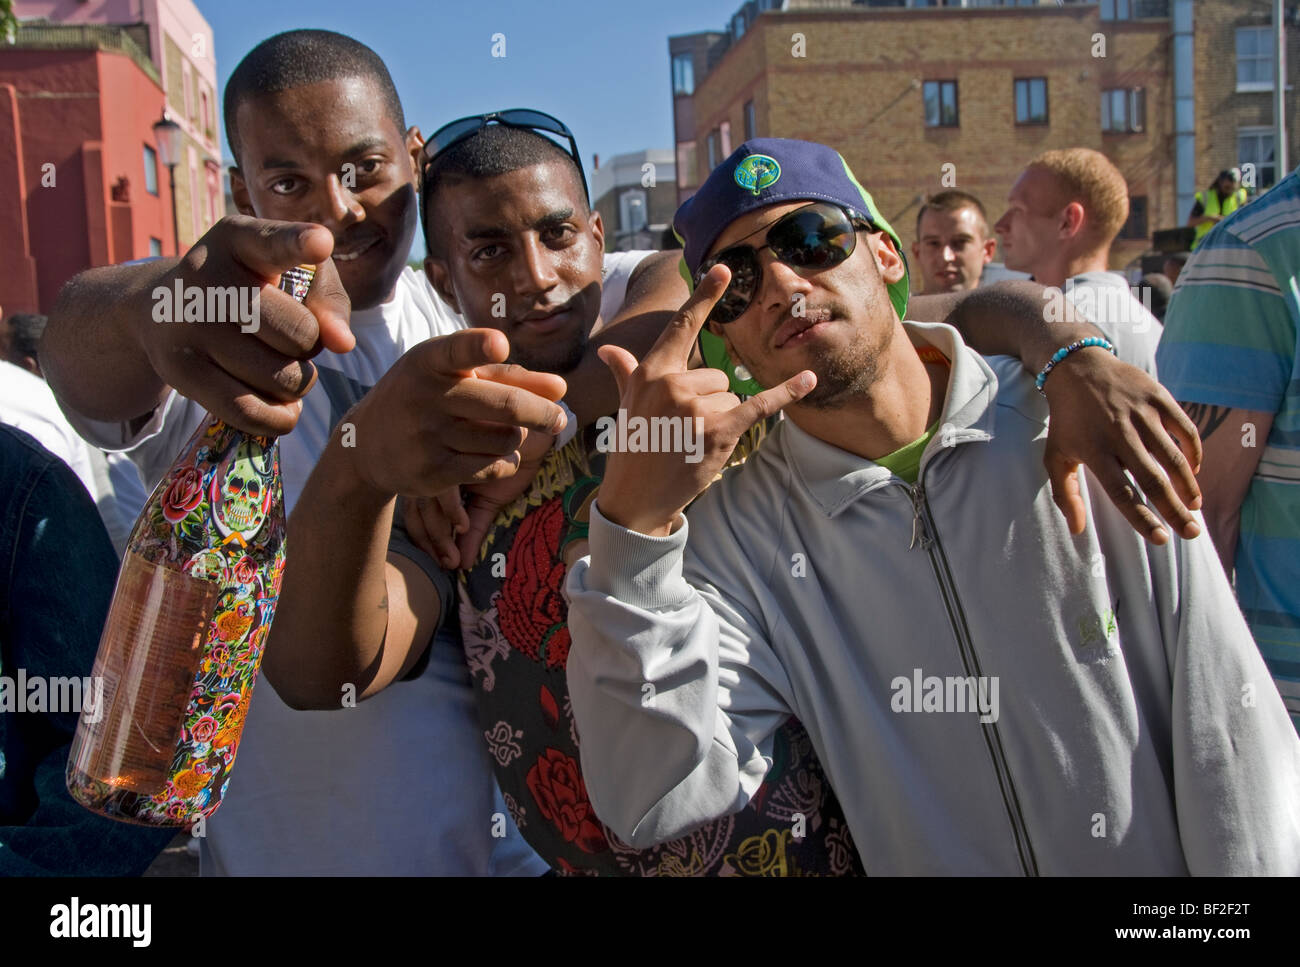 Three young men using hip hop or gangsta gestures in streets of Notting Hill - Stock Image